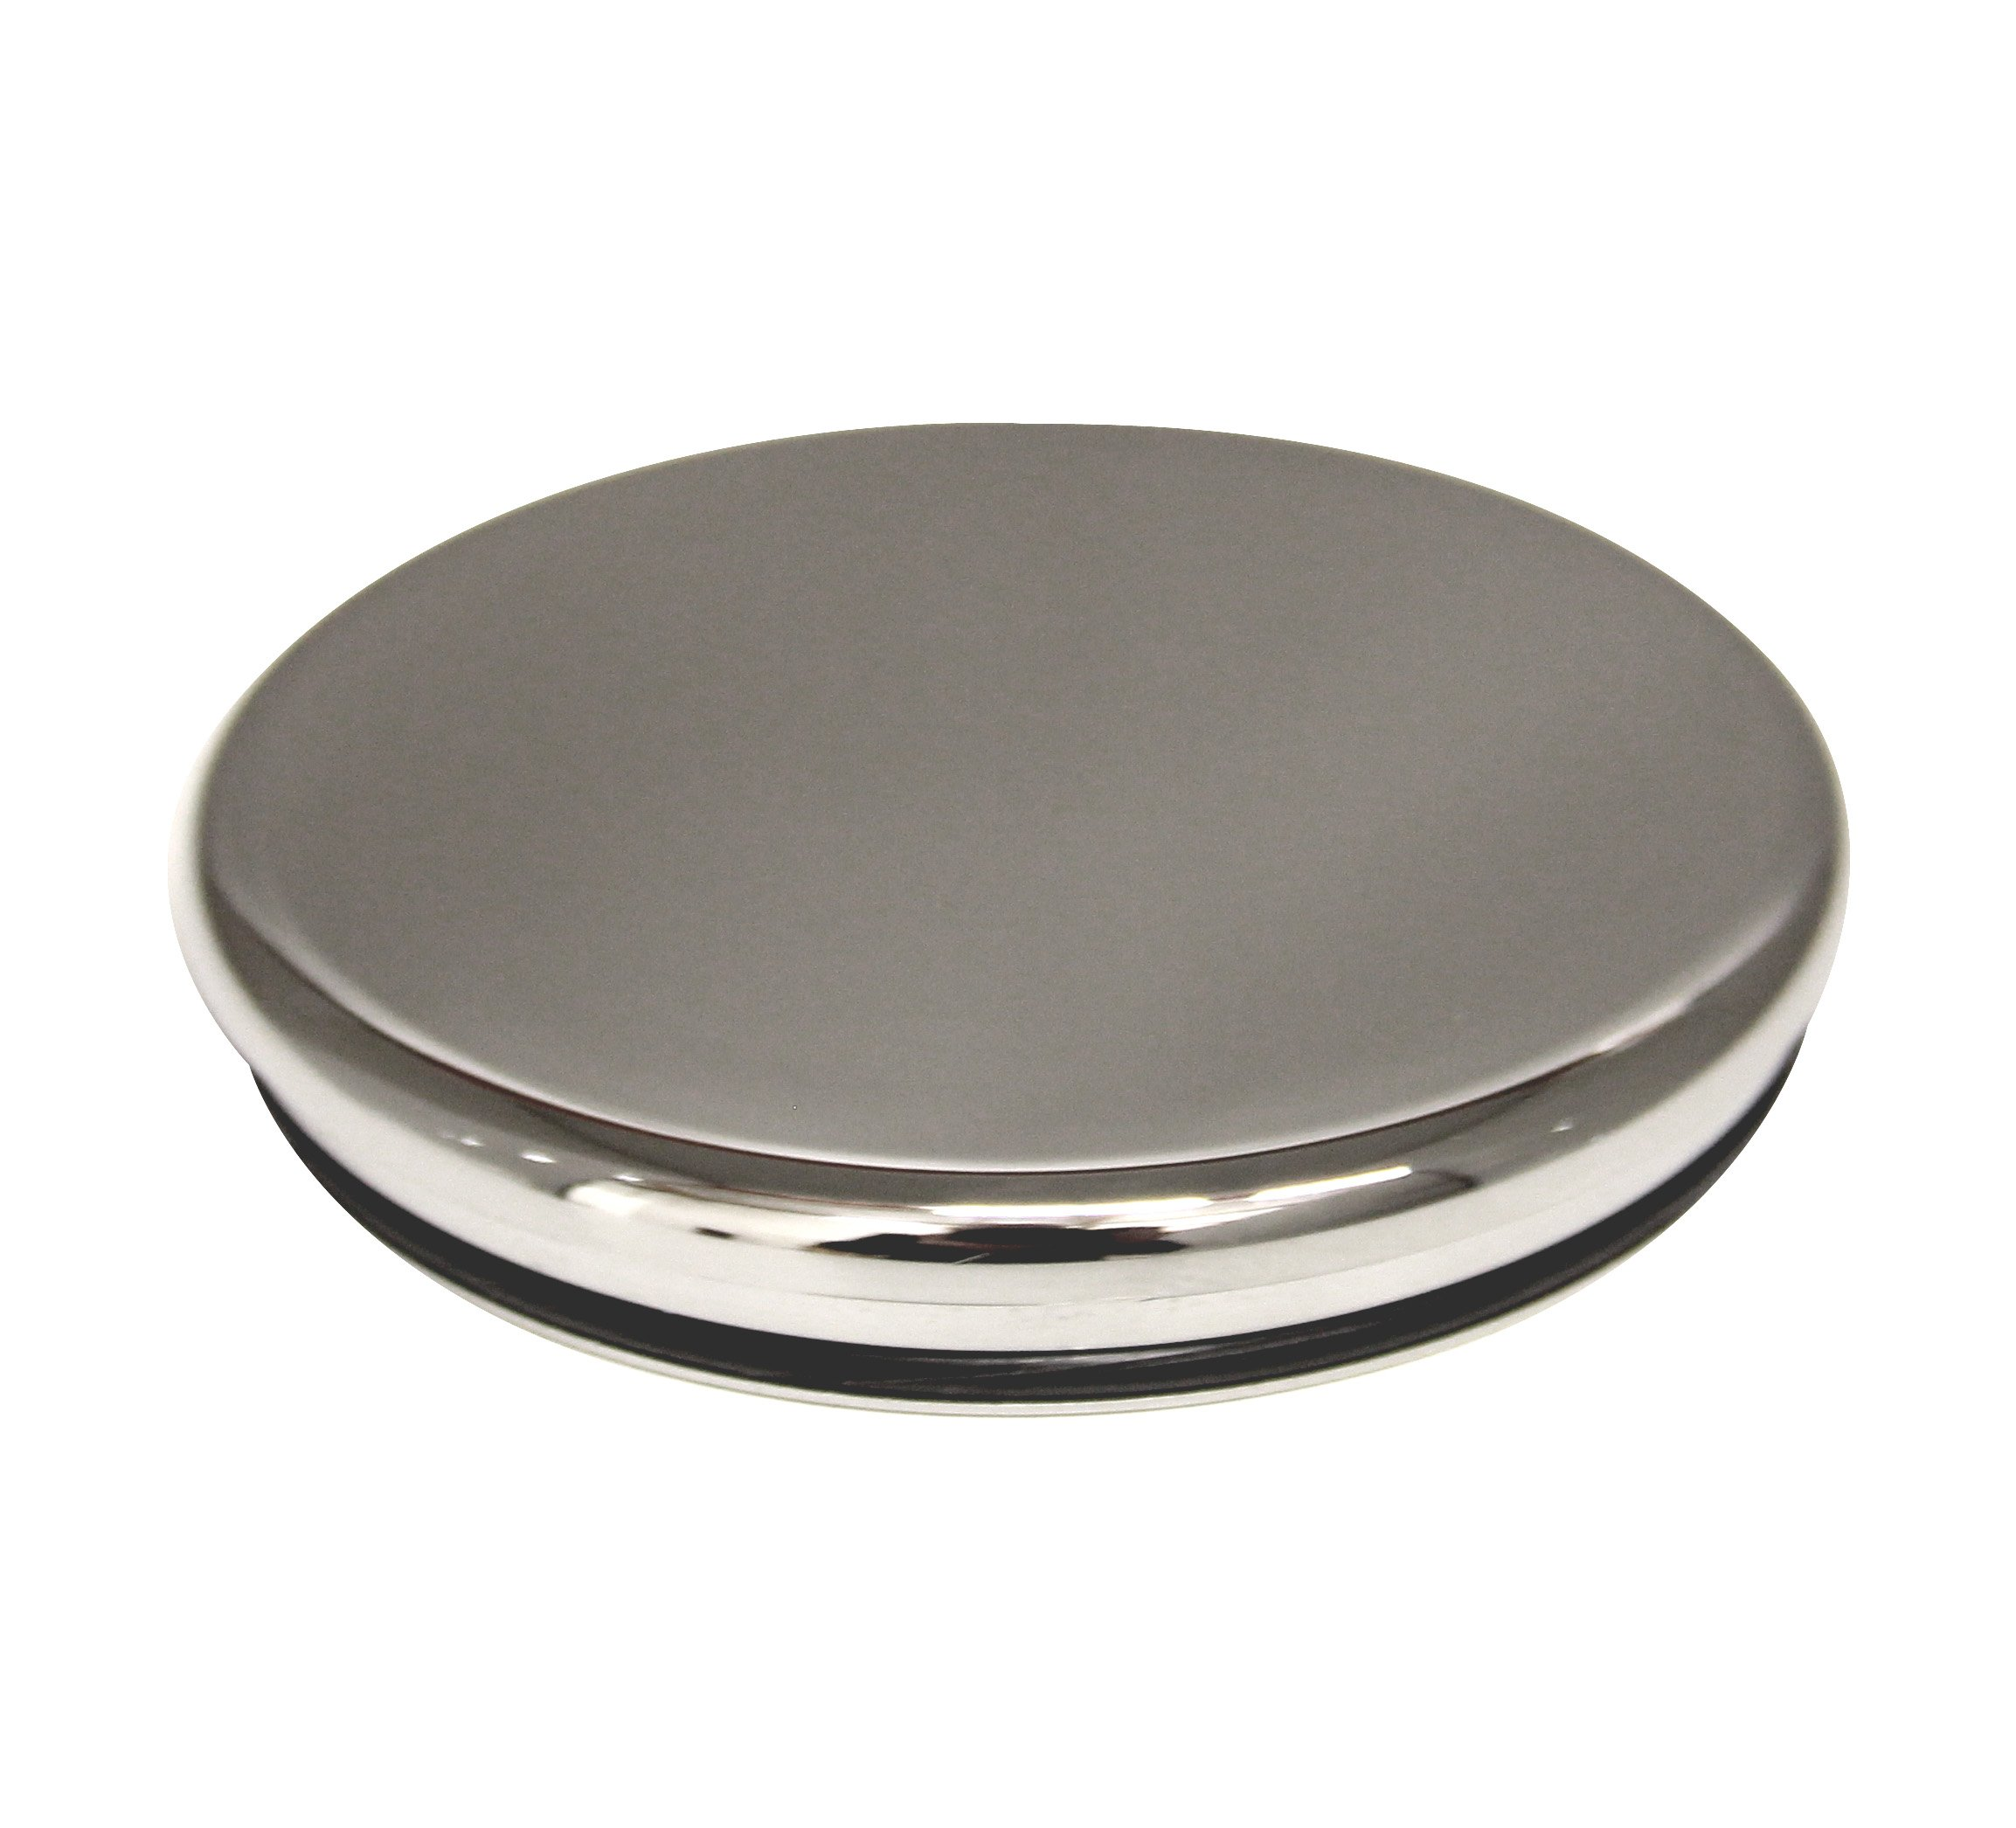 Taprite D12-2PA D12-2PA Chrome Replacement Tower Cap for 2 1/2'' Diameter Tower by Taprite